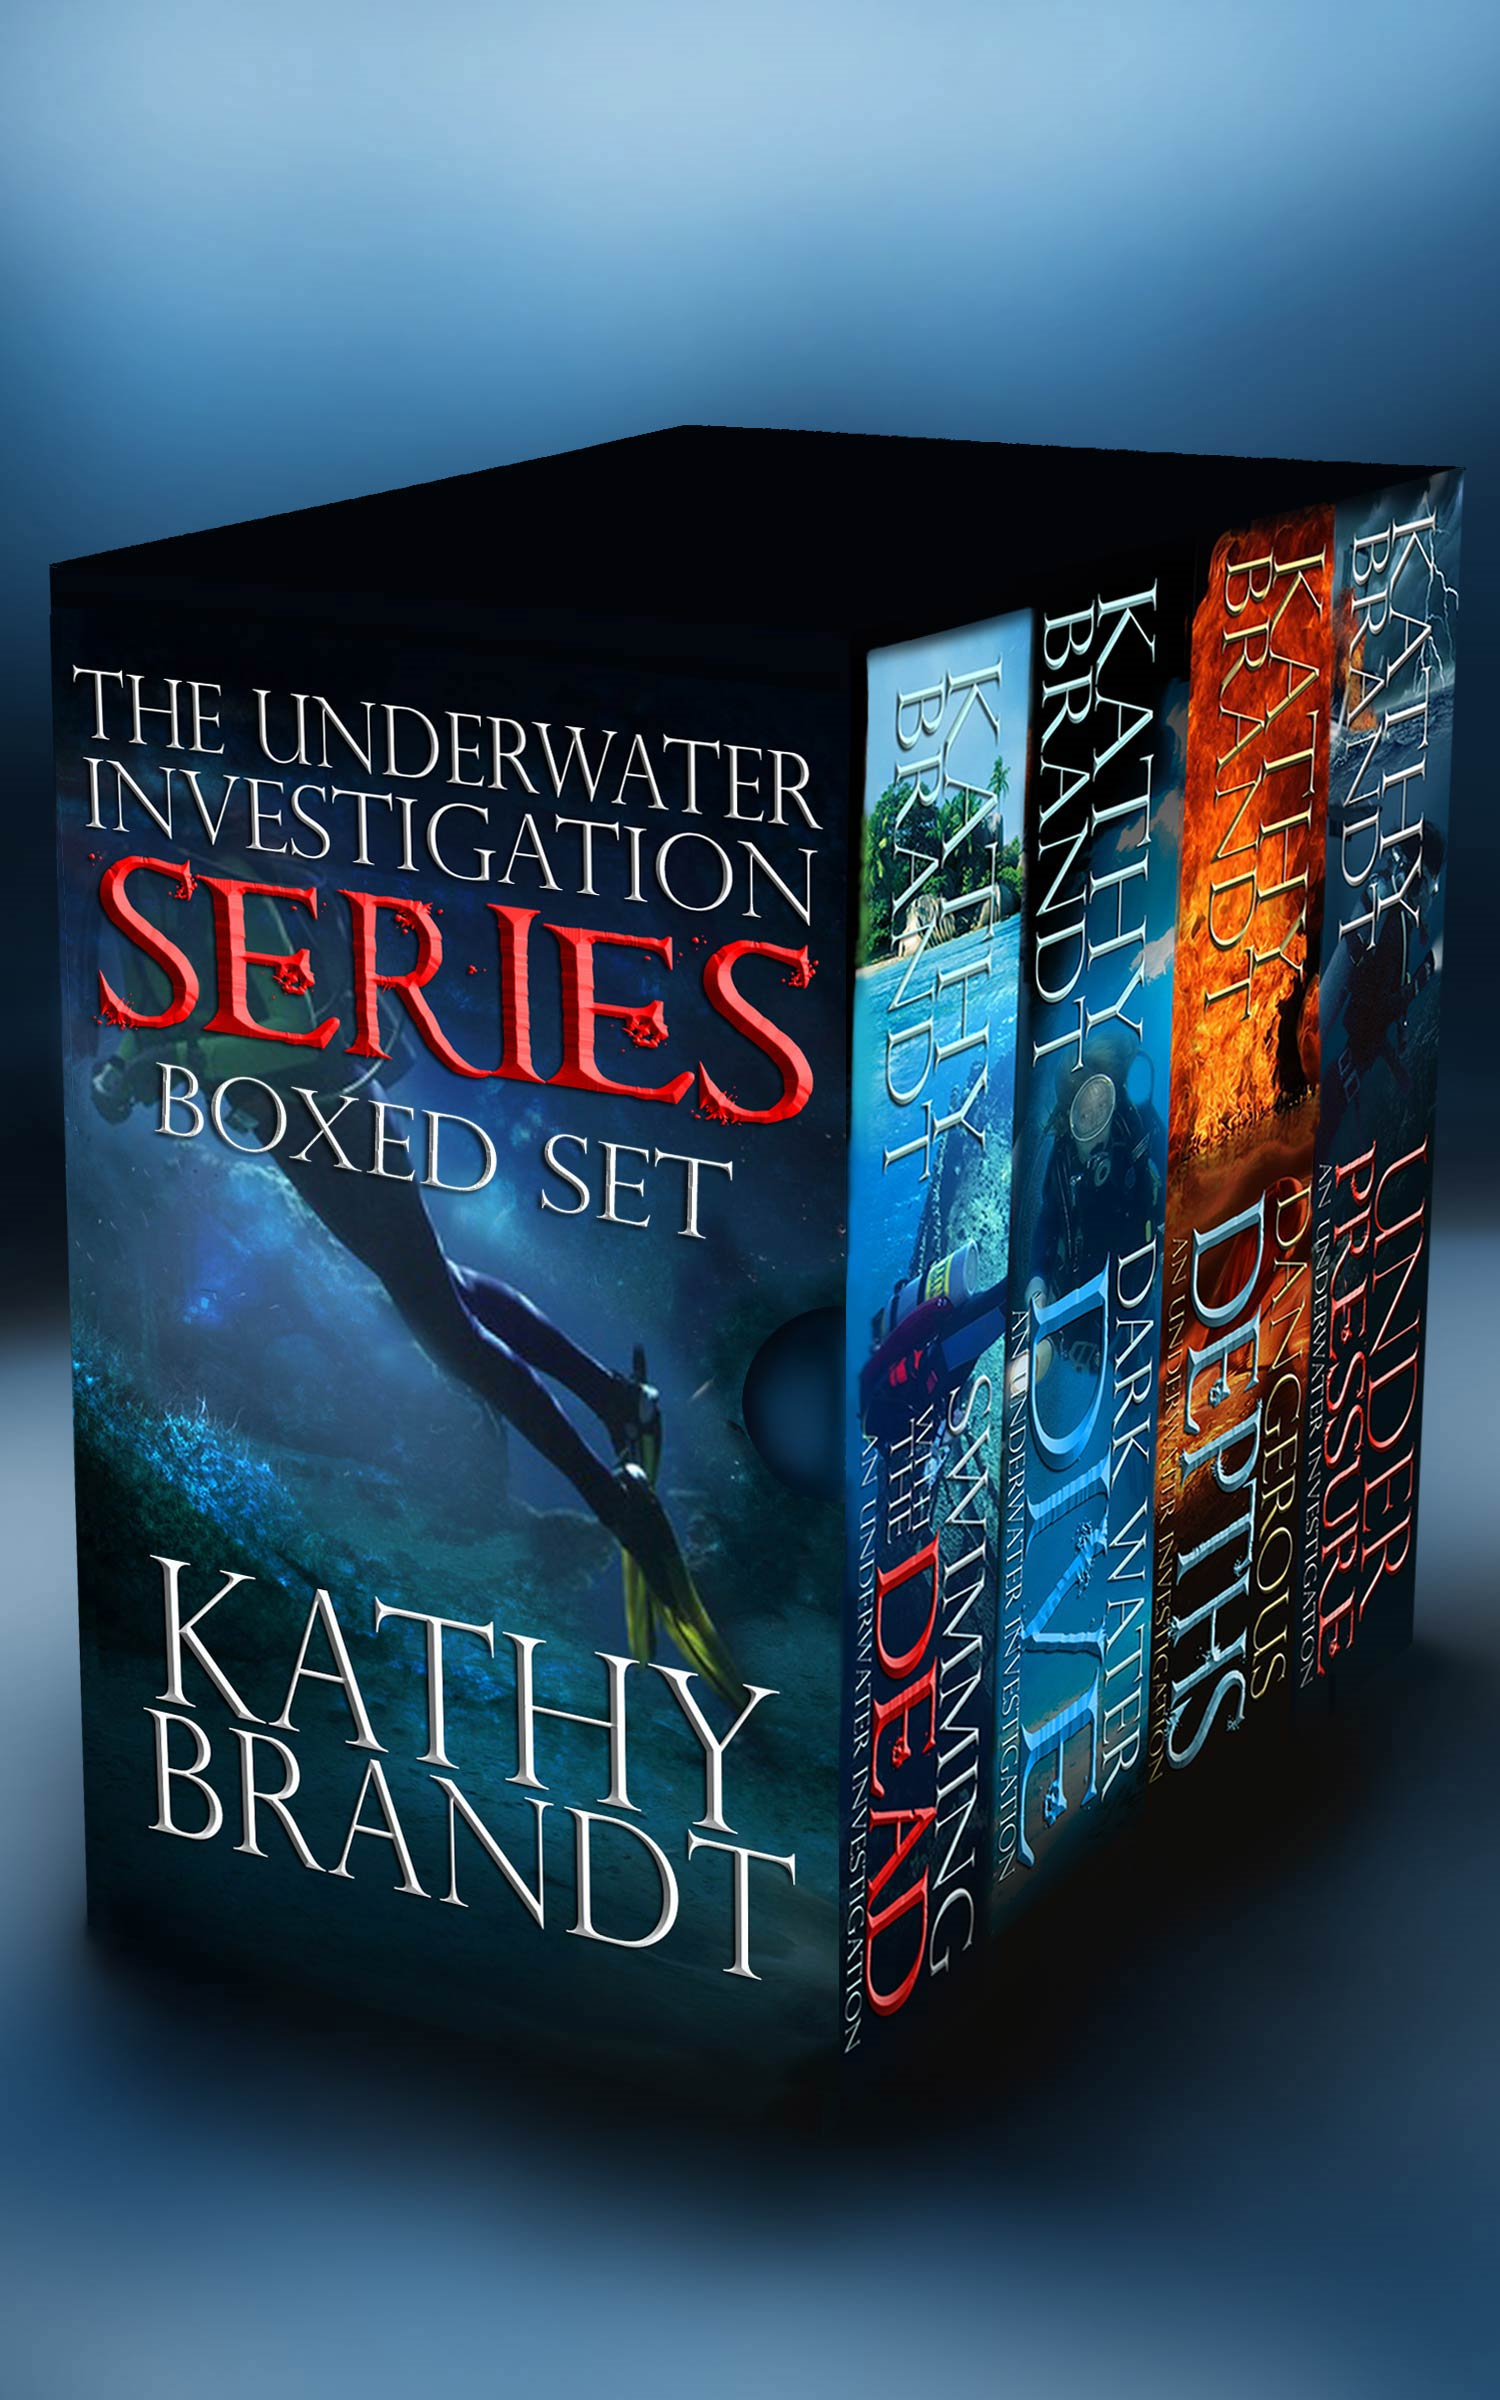 The Underwater Investigation Series Boxed Set